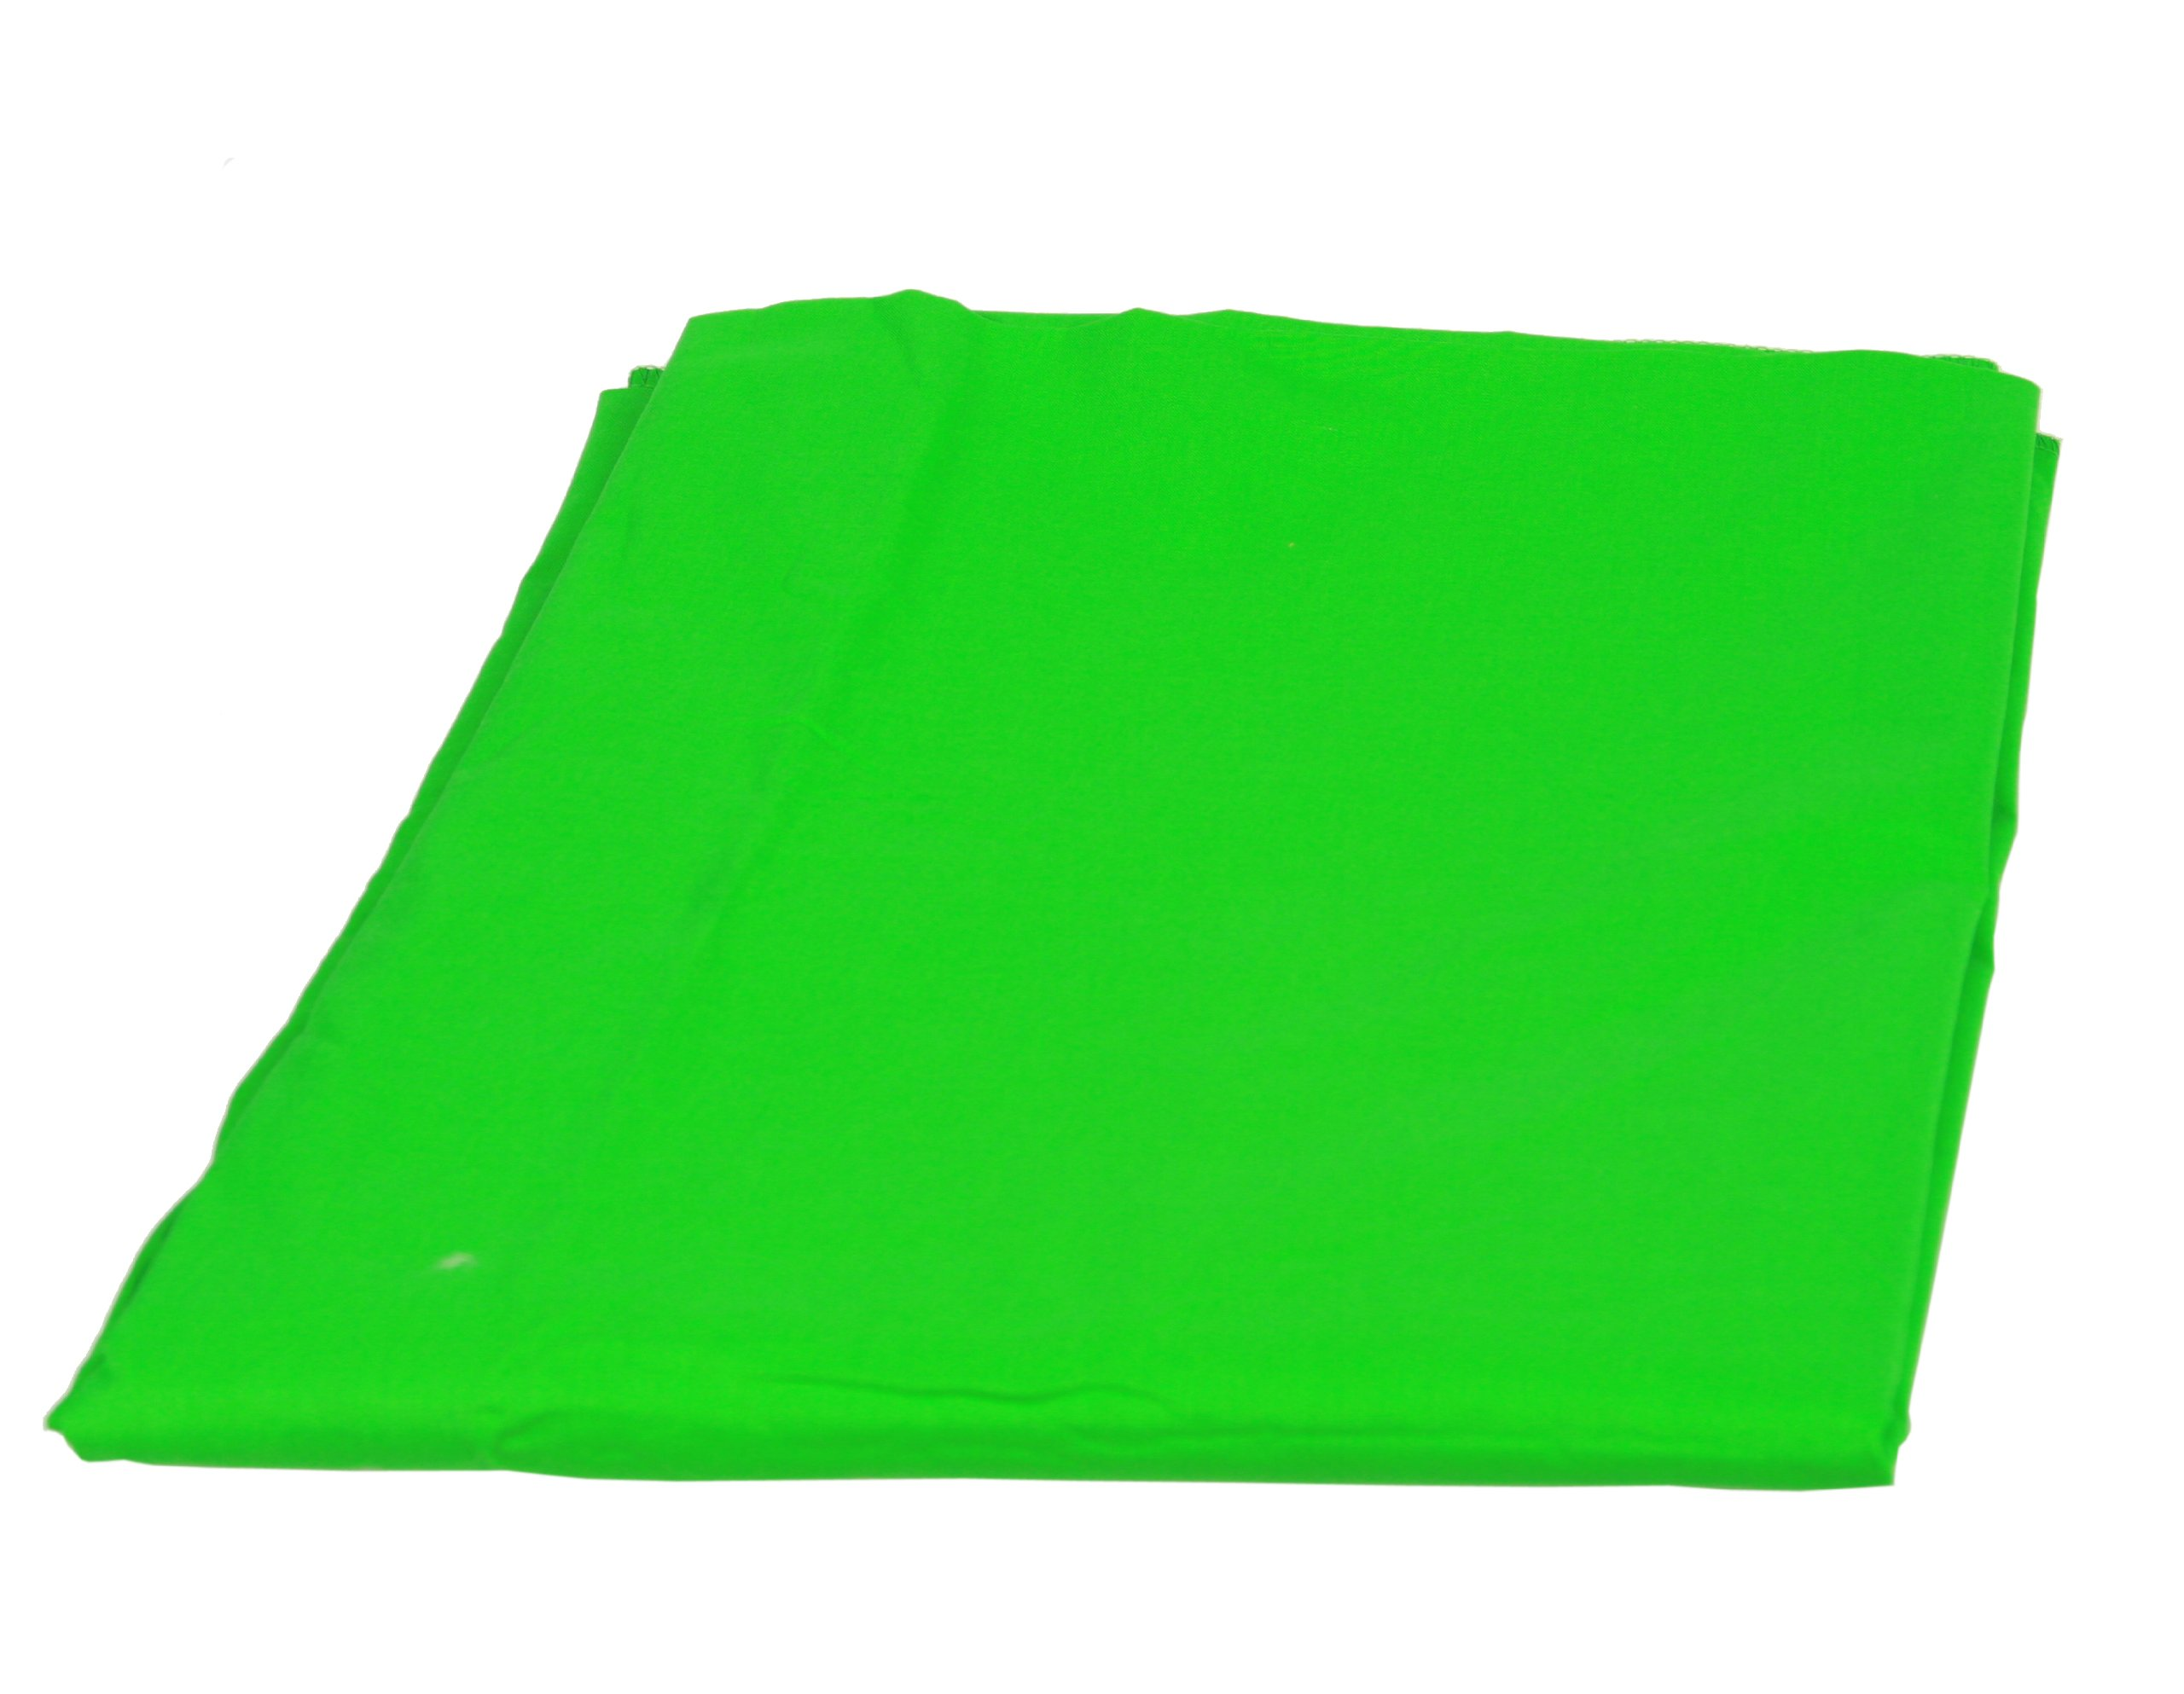 Background Stand Backdrop Support System Kit with 6ft x 9ft Chromakey Green Screen Muslin Backdrop by Fancierstudio 9115+6x9G by Fancierstudio